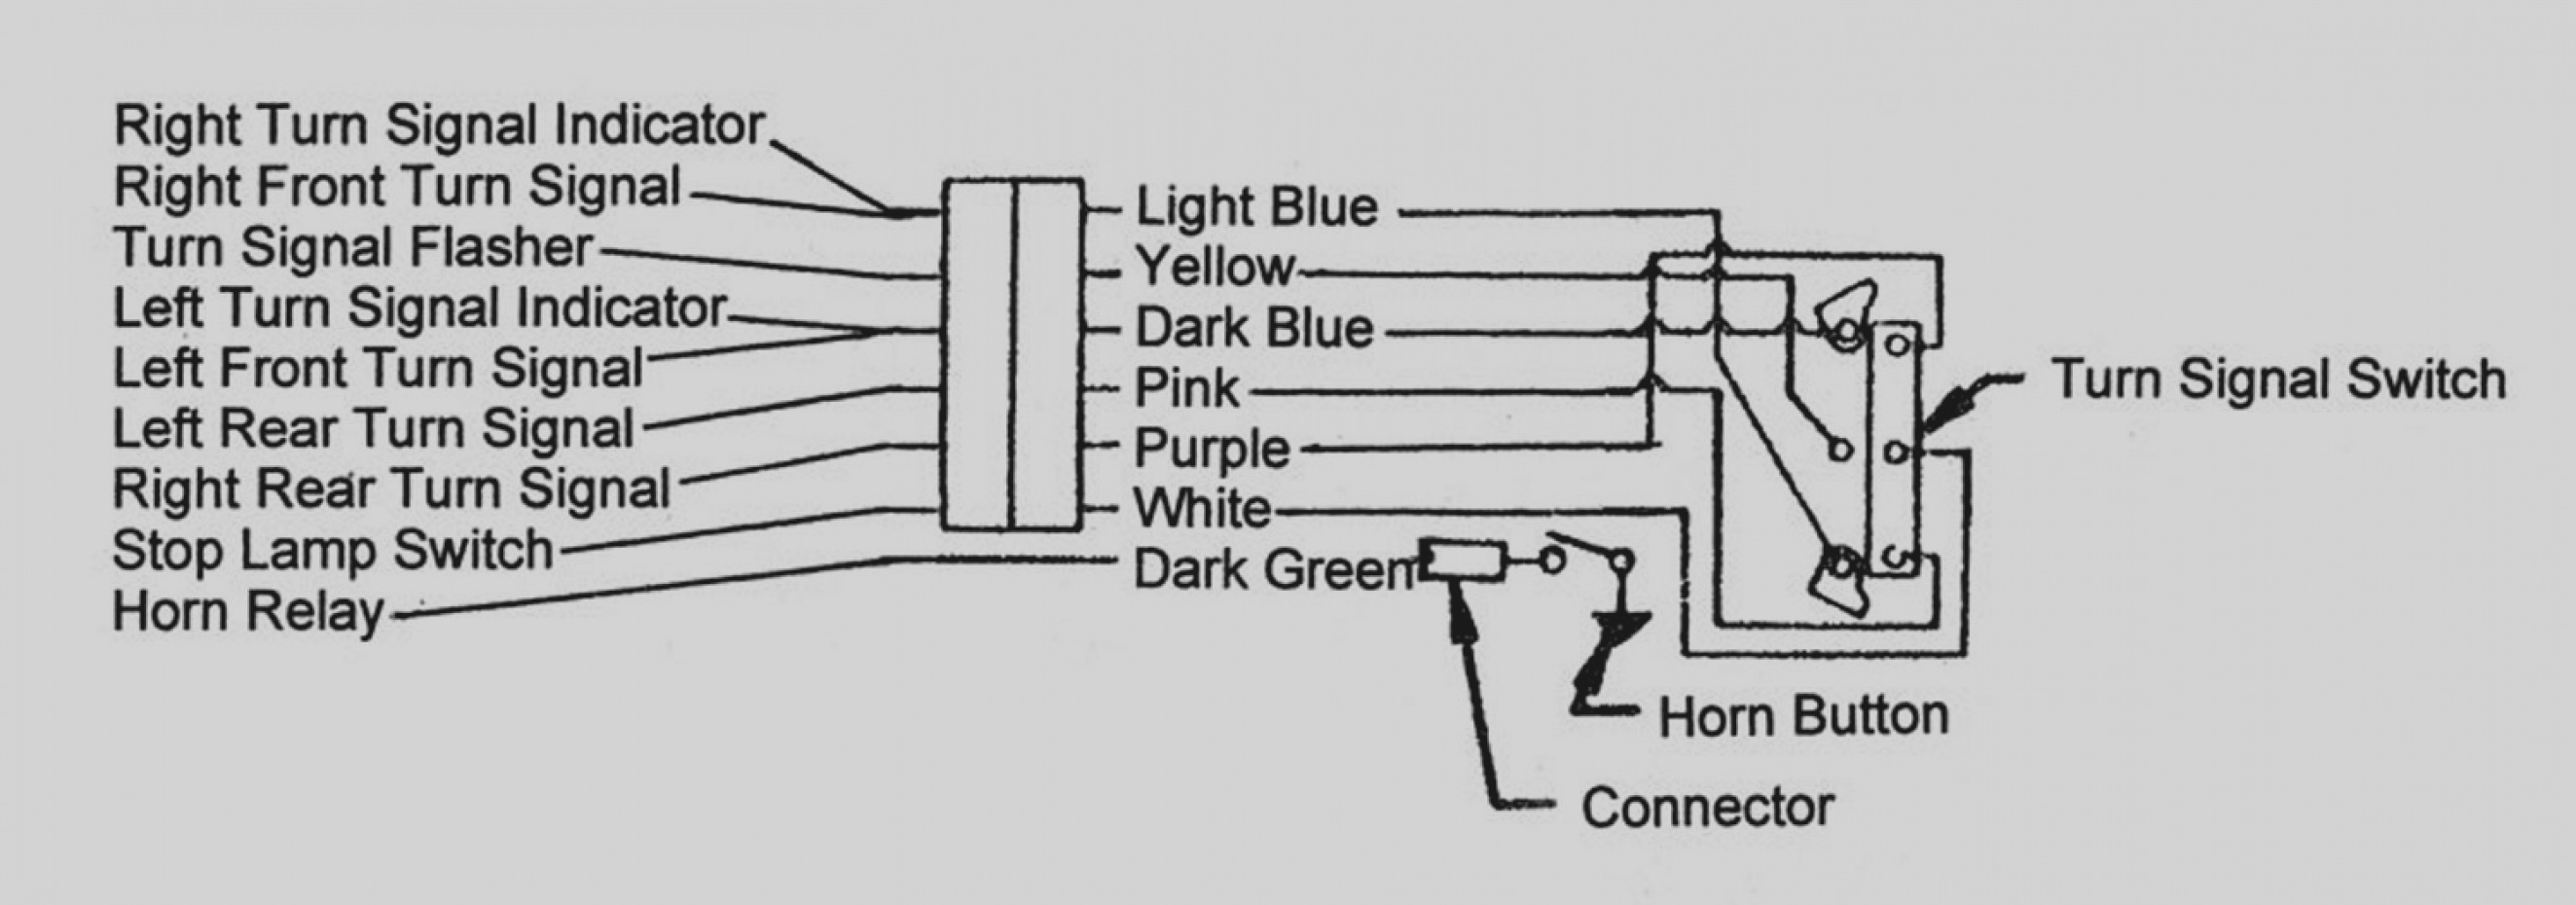 Gm Blinker Wiring Not Lossing Diagram 700r4 Schematic Turn Signal Schematics Third Level Rh 20 5 15 Jacobwinterstein Com